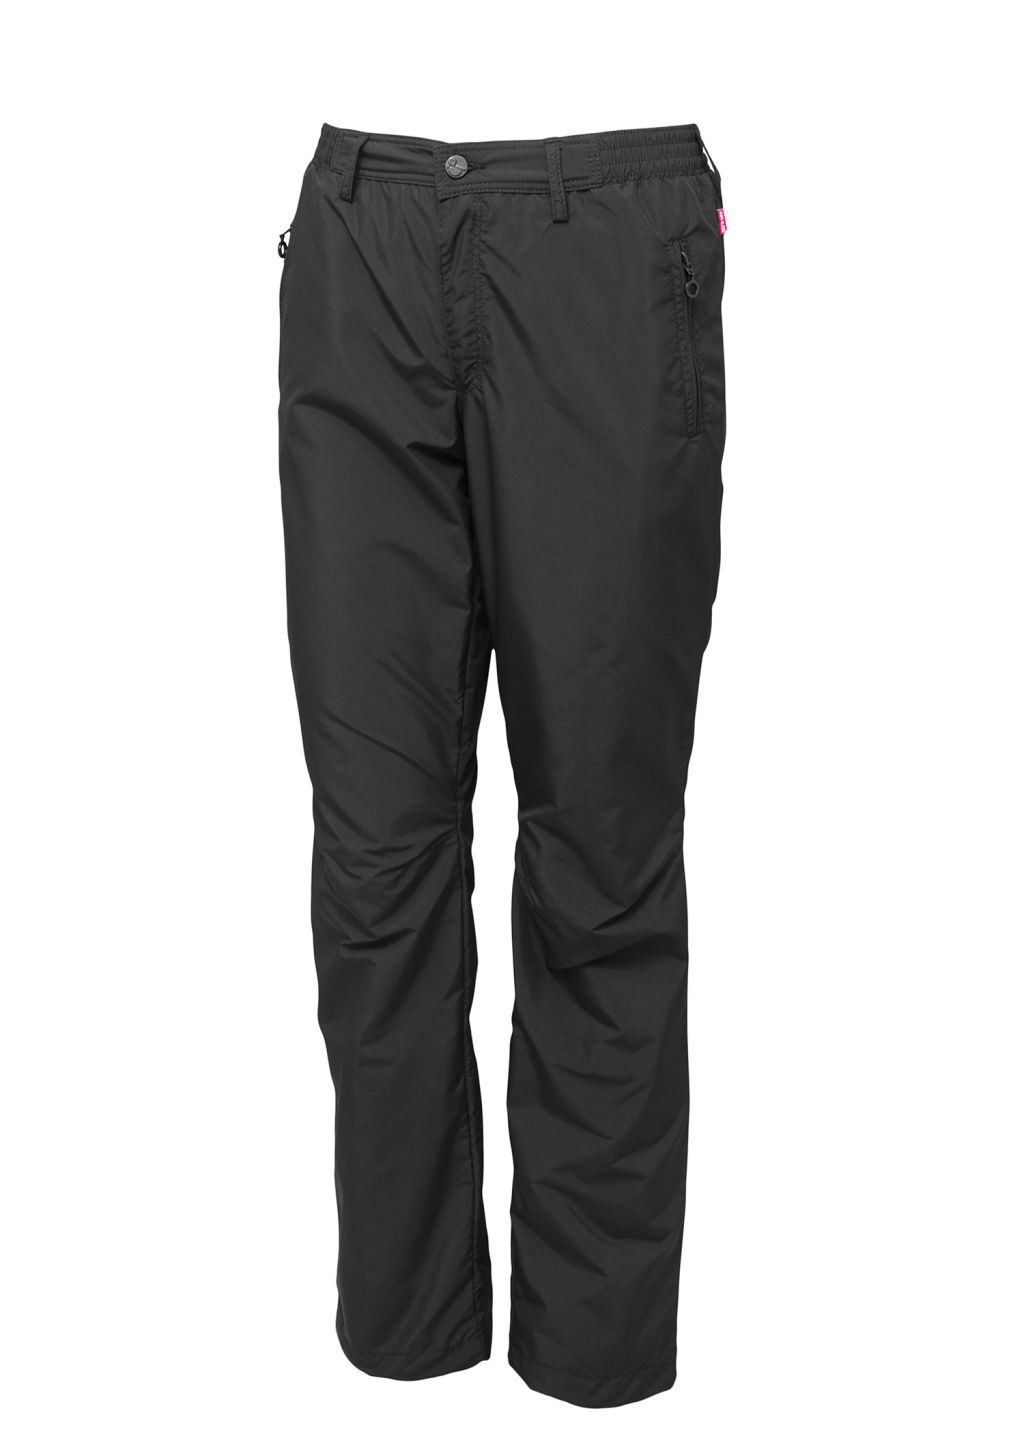 Sail&ski Netta Pant Regular W